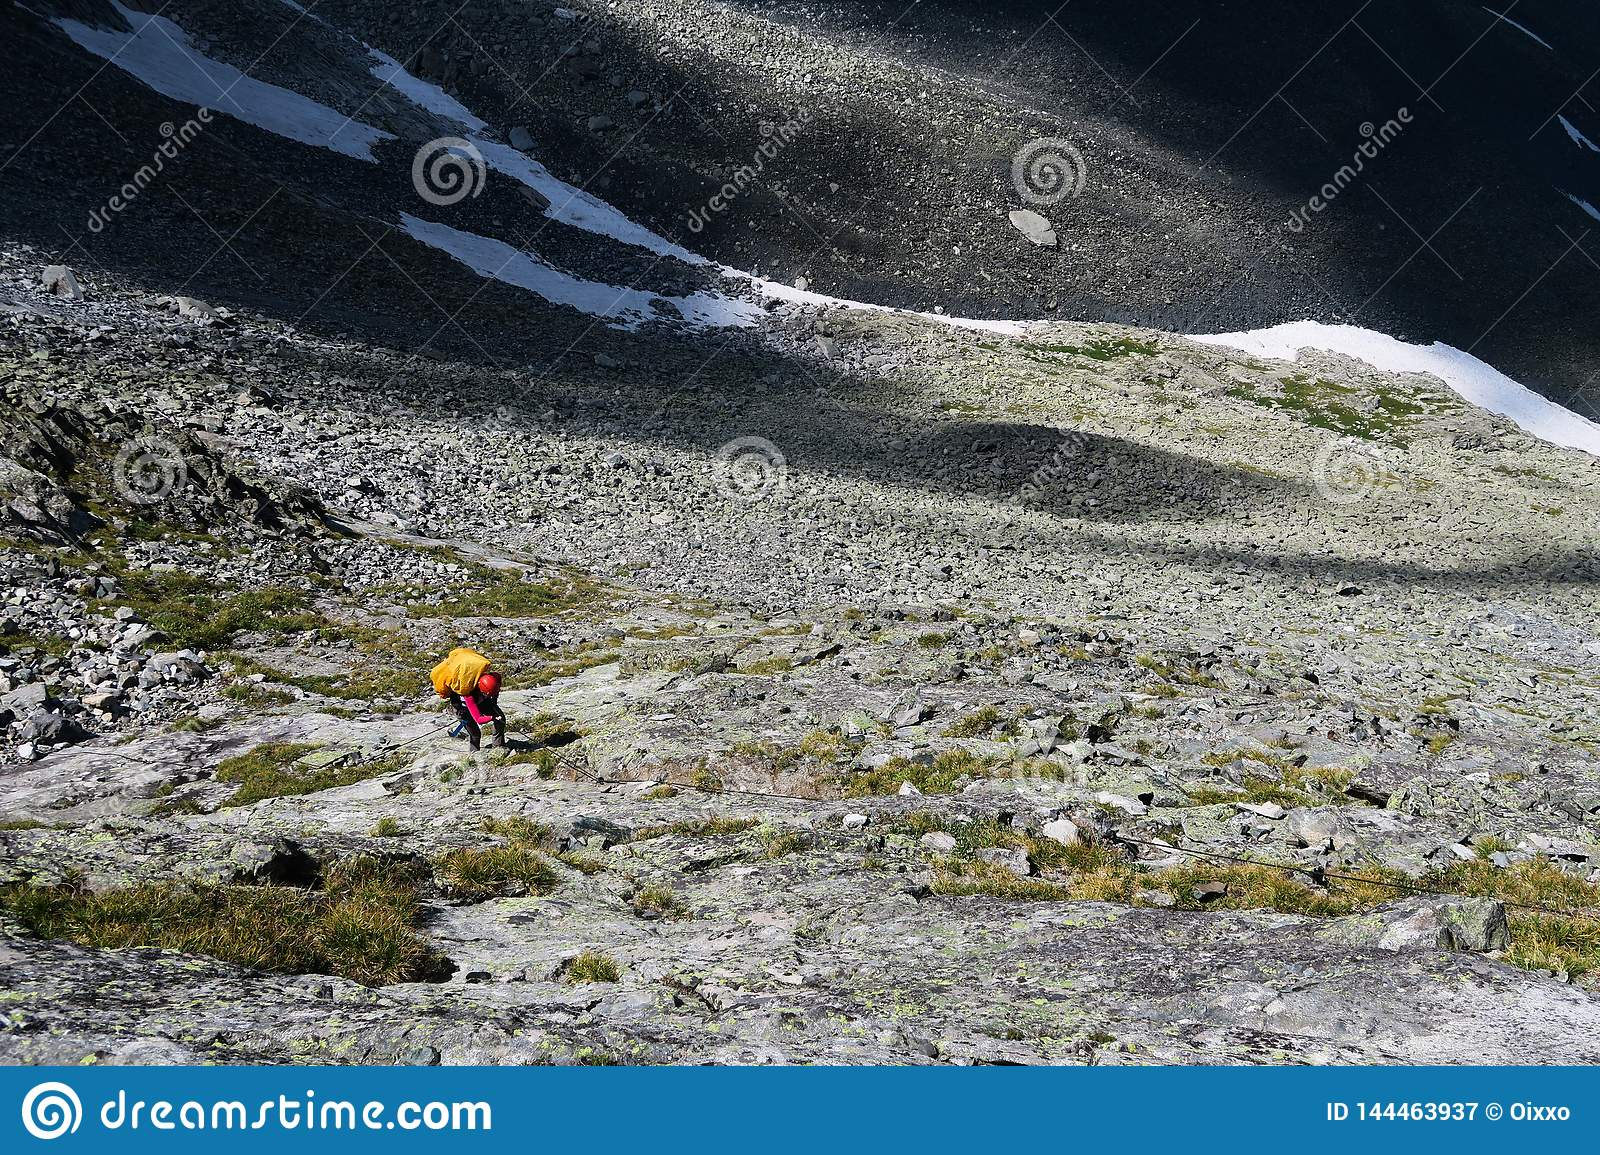 Tourist climbs up the stones in the mountains. Going up the rocky moraine